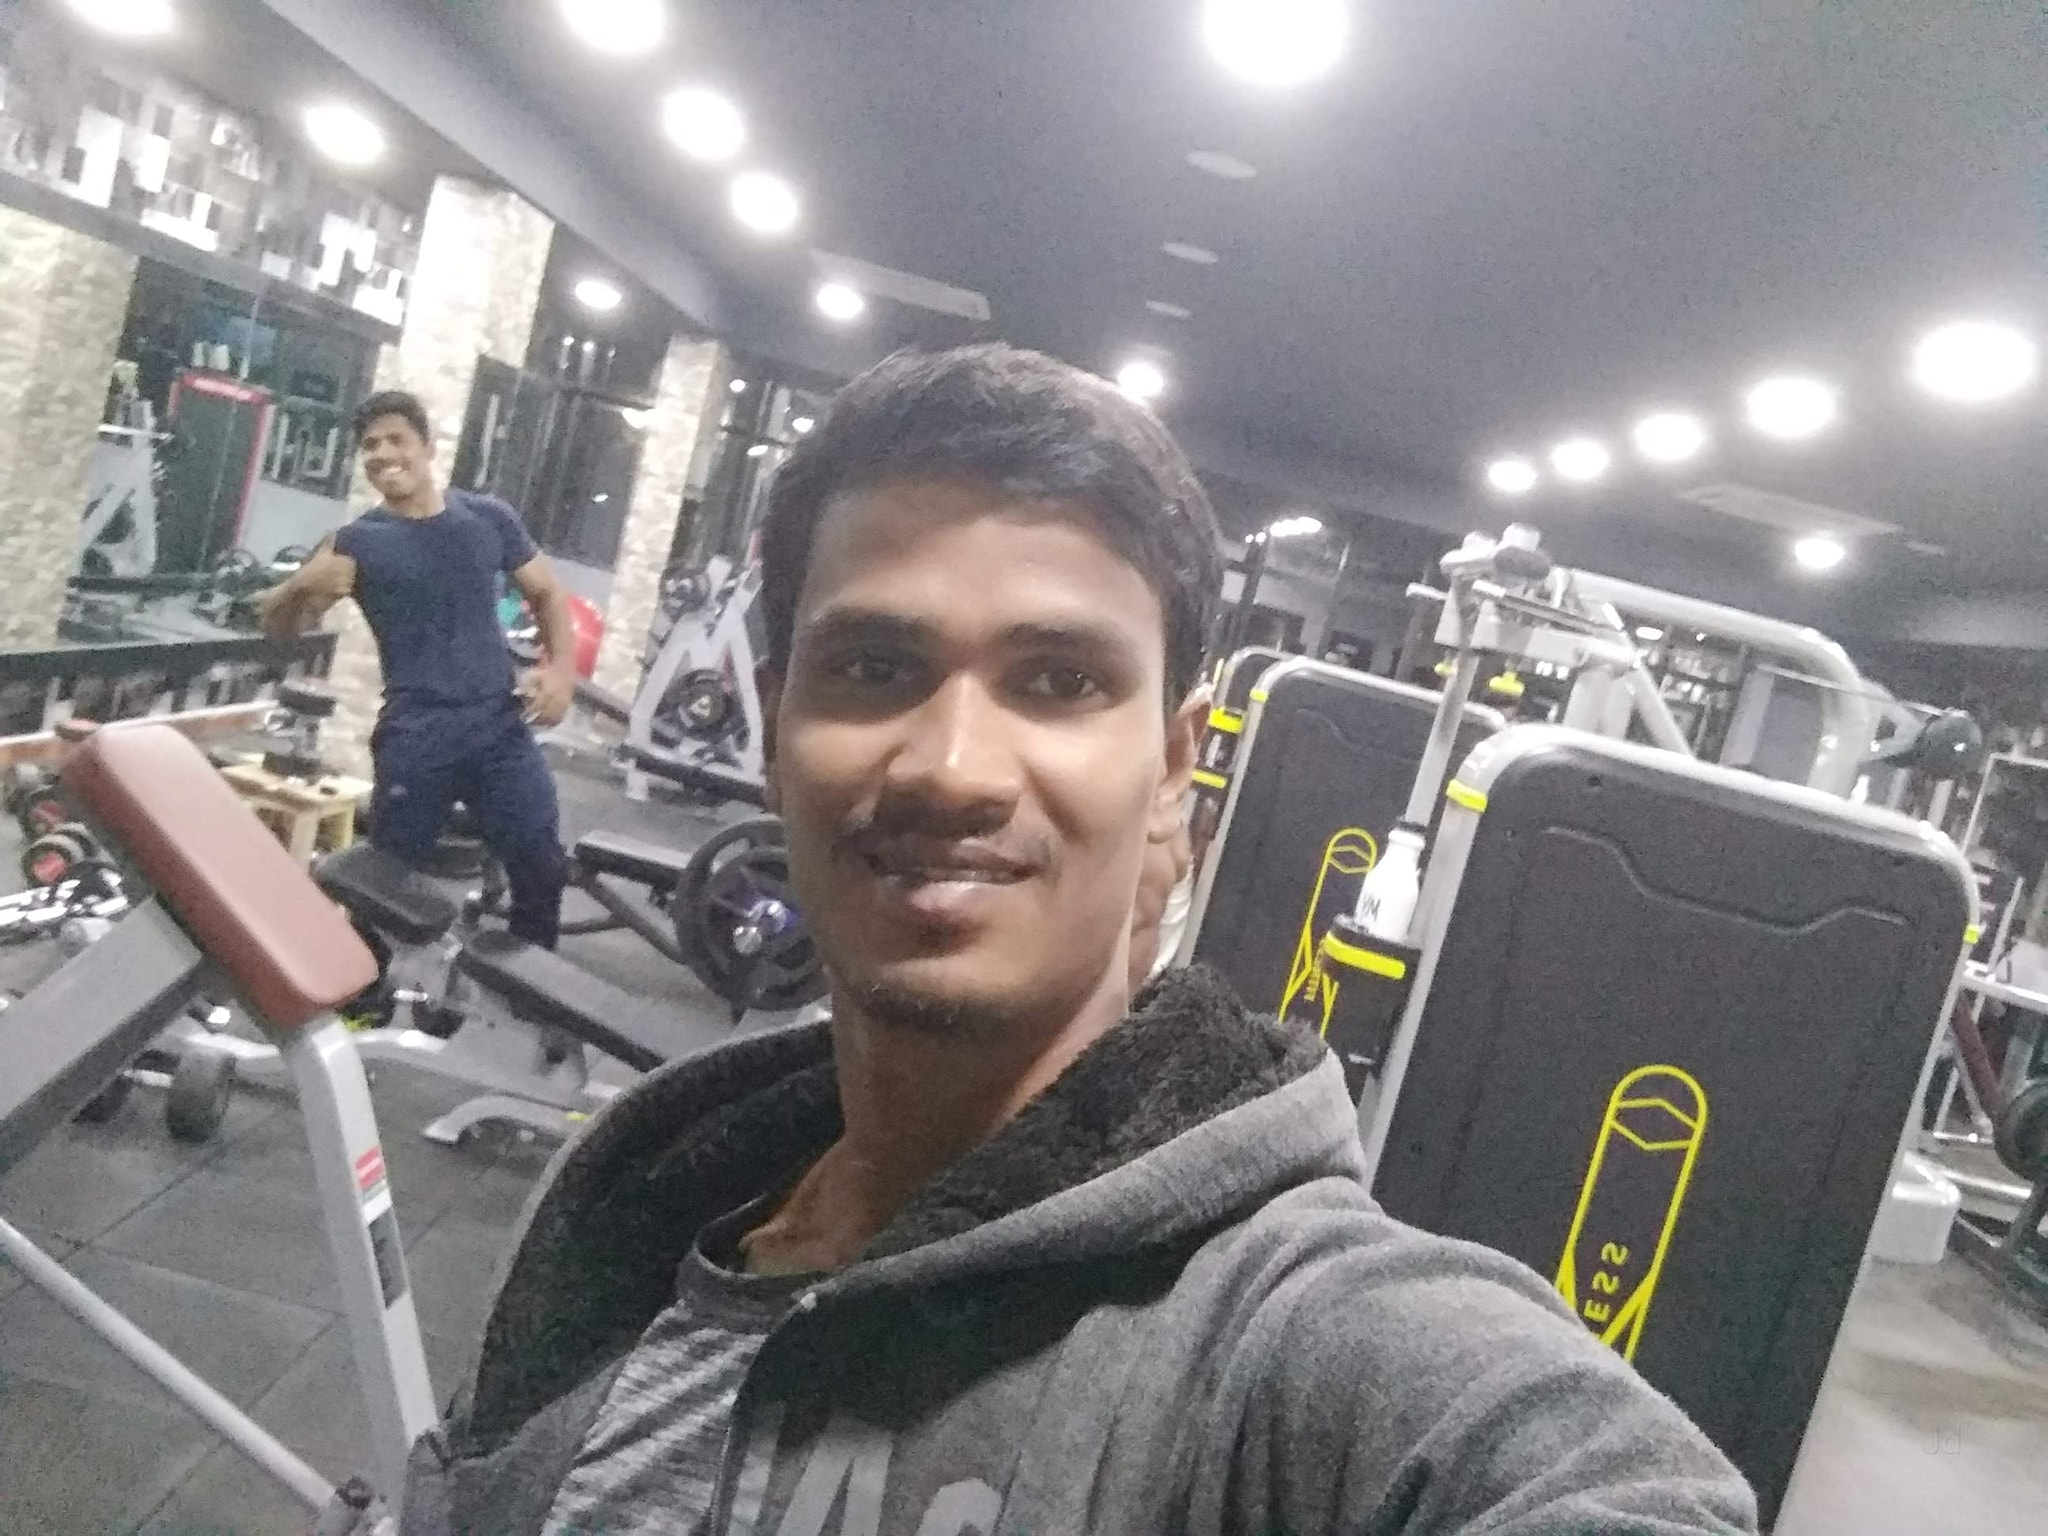 Top 20 gyms in gajuwaka best body building & fitness centres